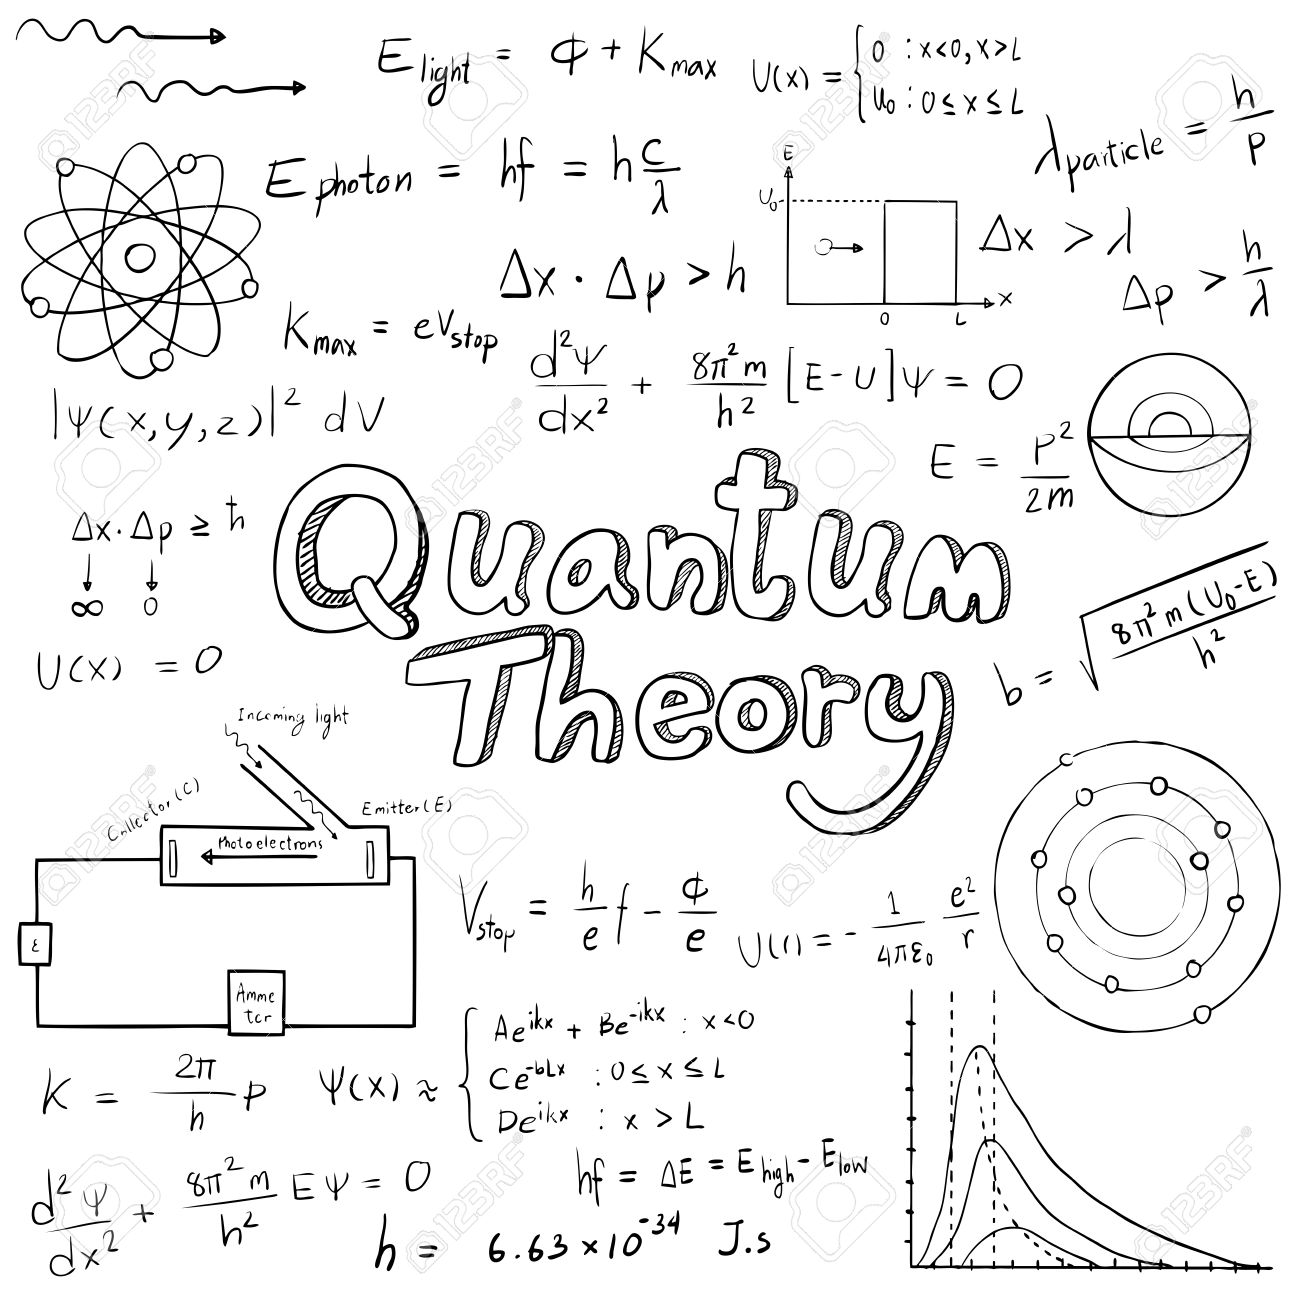 Quantum Theory Law And Physics Mathematical Formula Equation